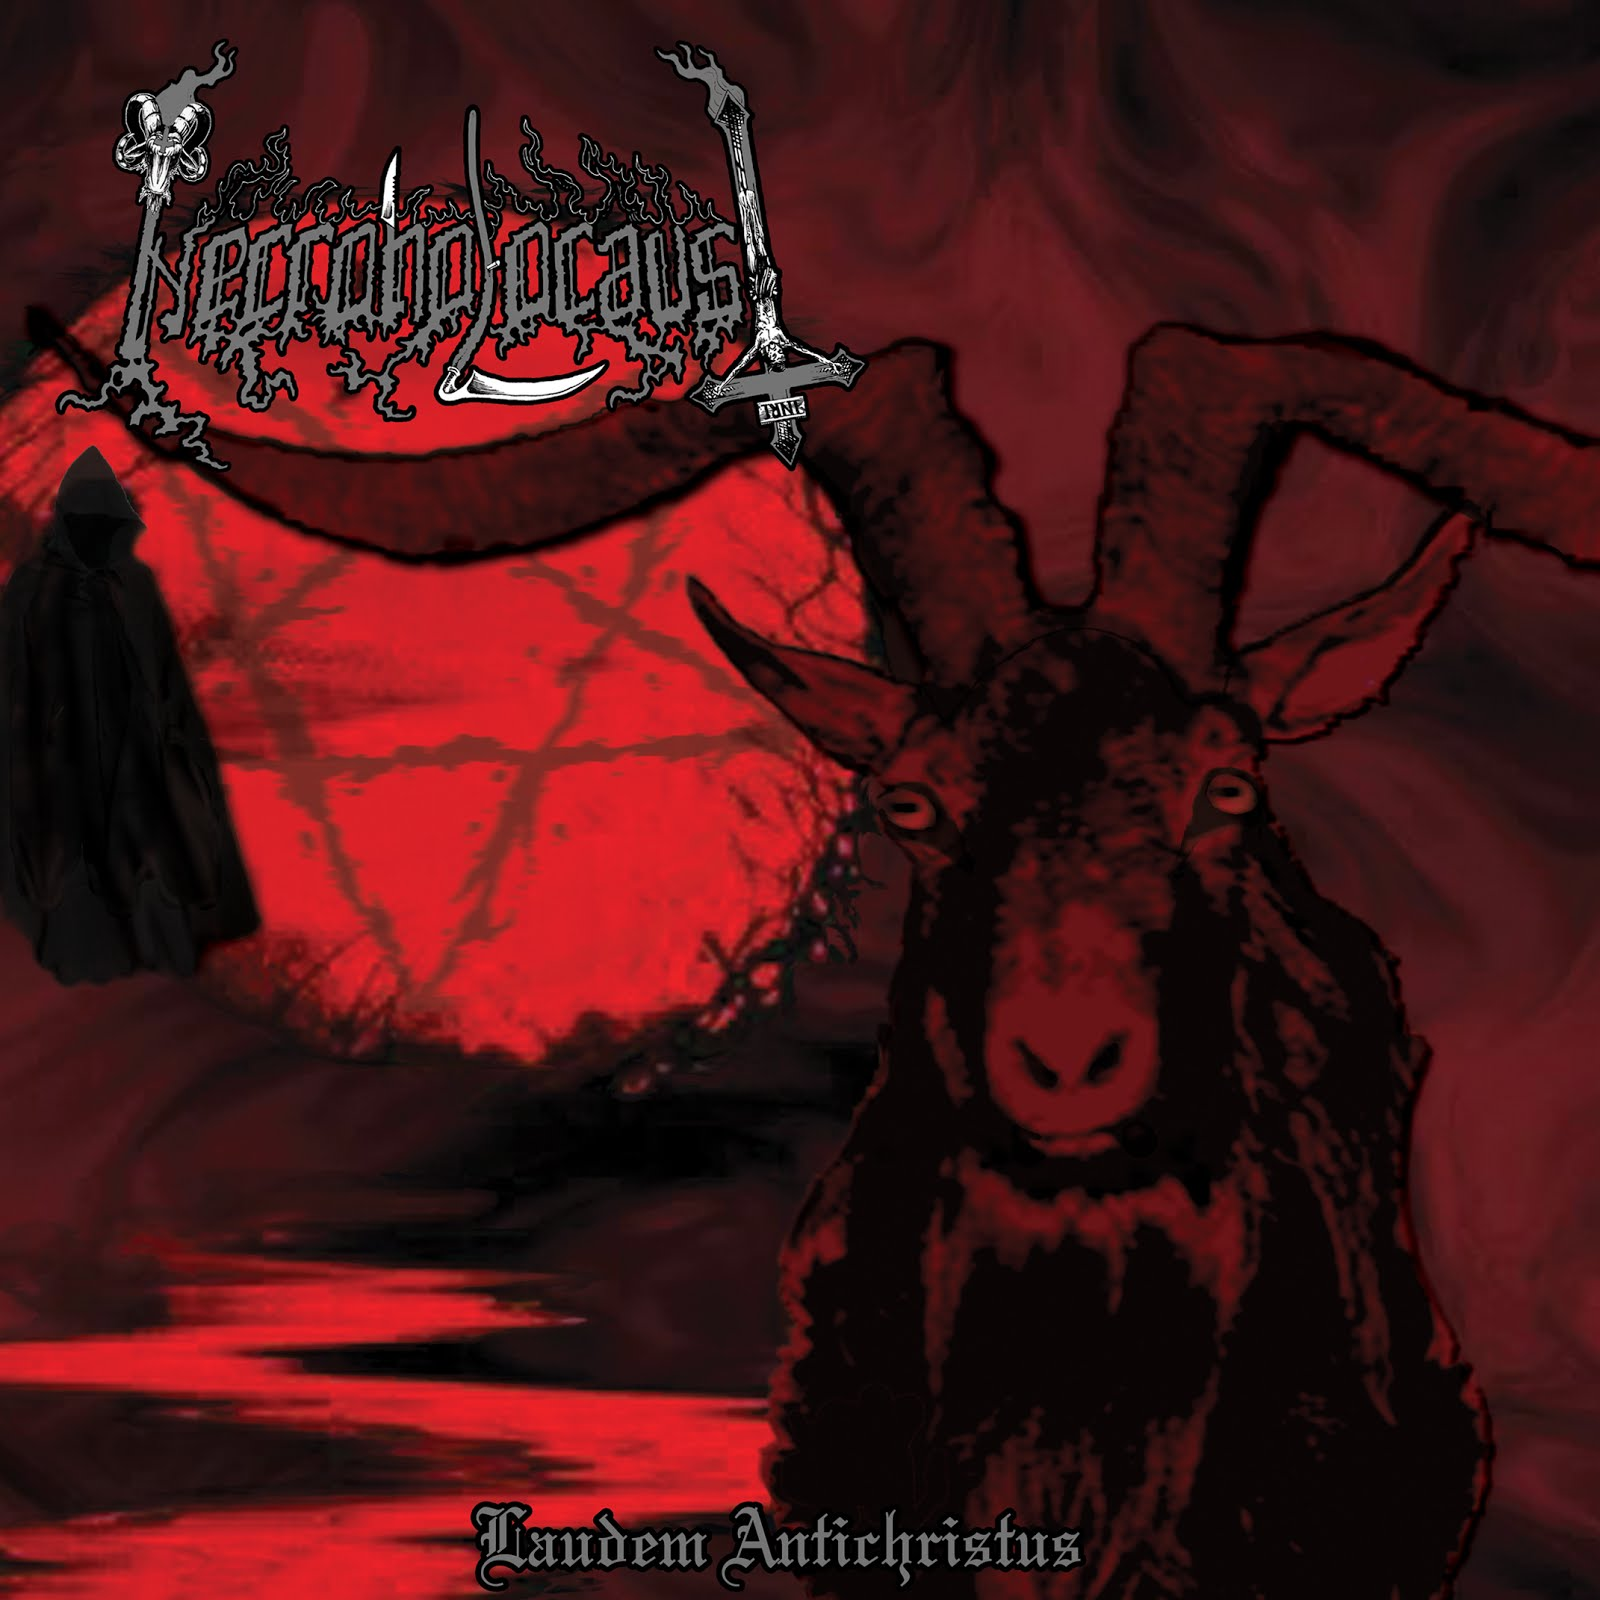 Necroholocaust - Laudem Antichristus - Press Release + Track Stream.